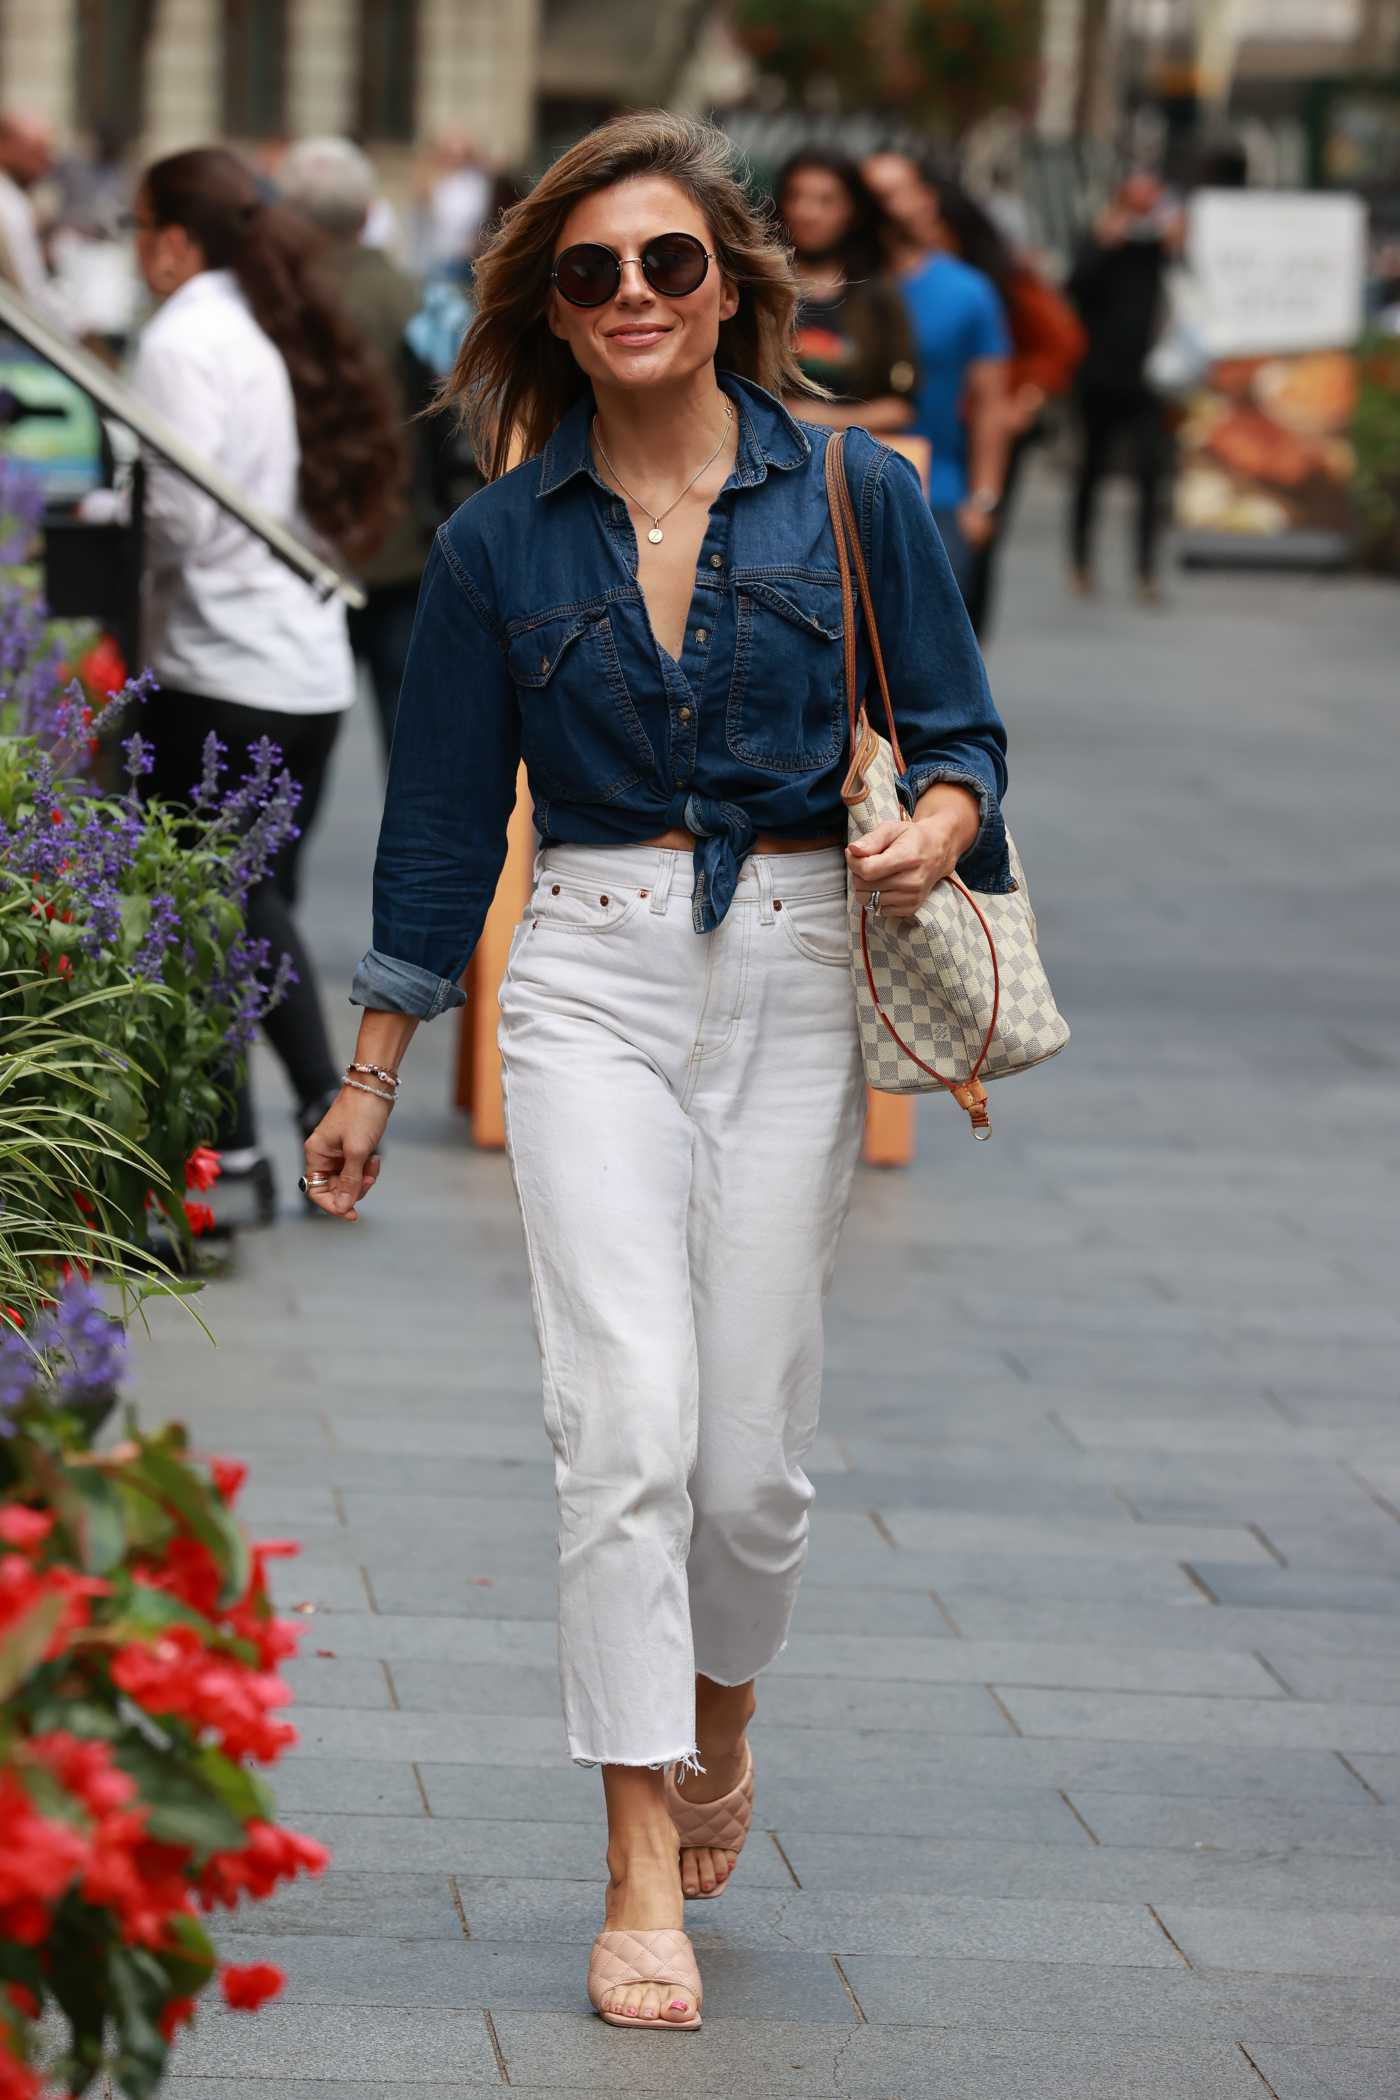 Zoe Hardman in a White Jeans Arrives at the Heart Radio in London 08/24/2020